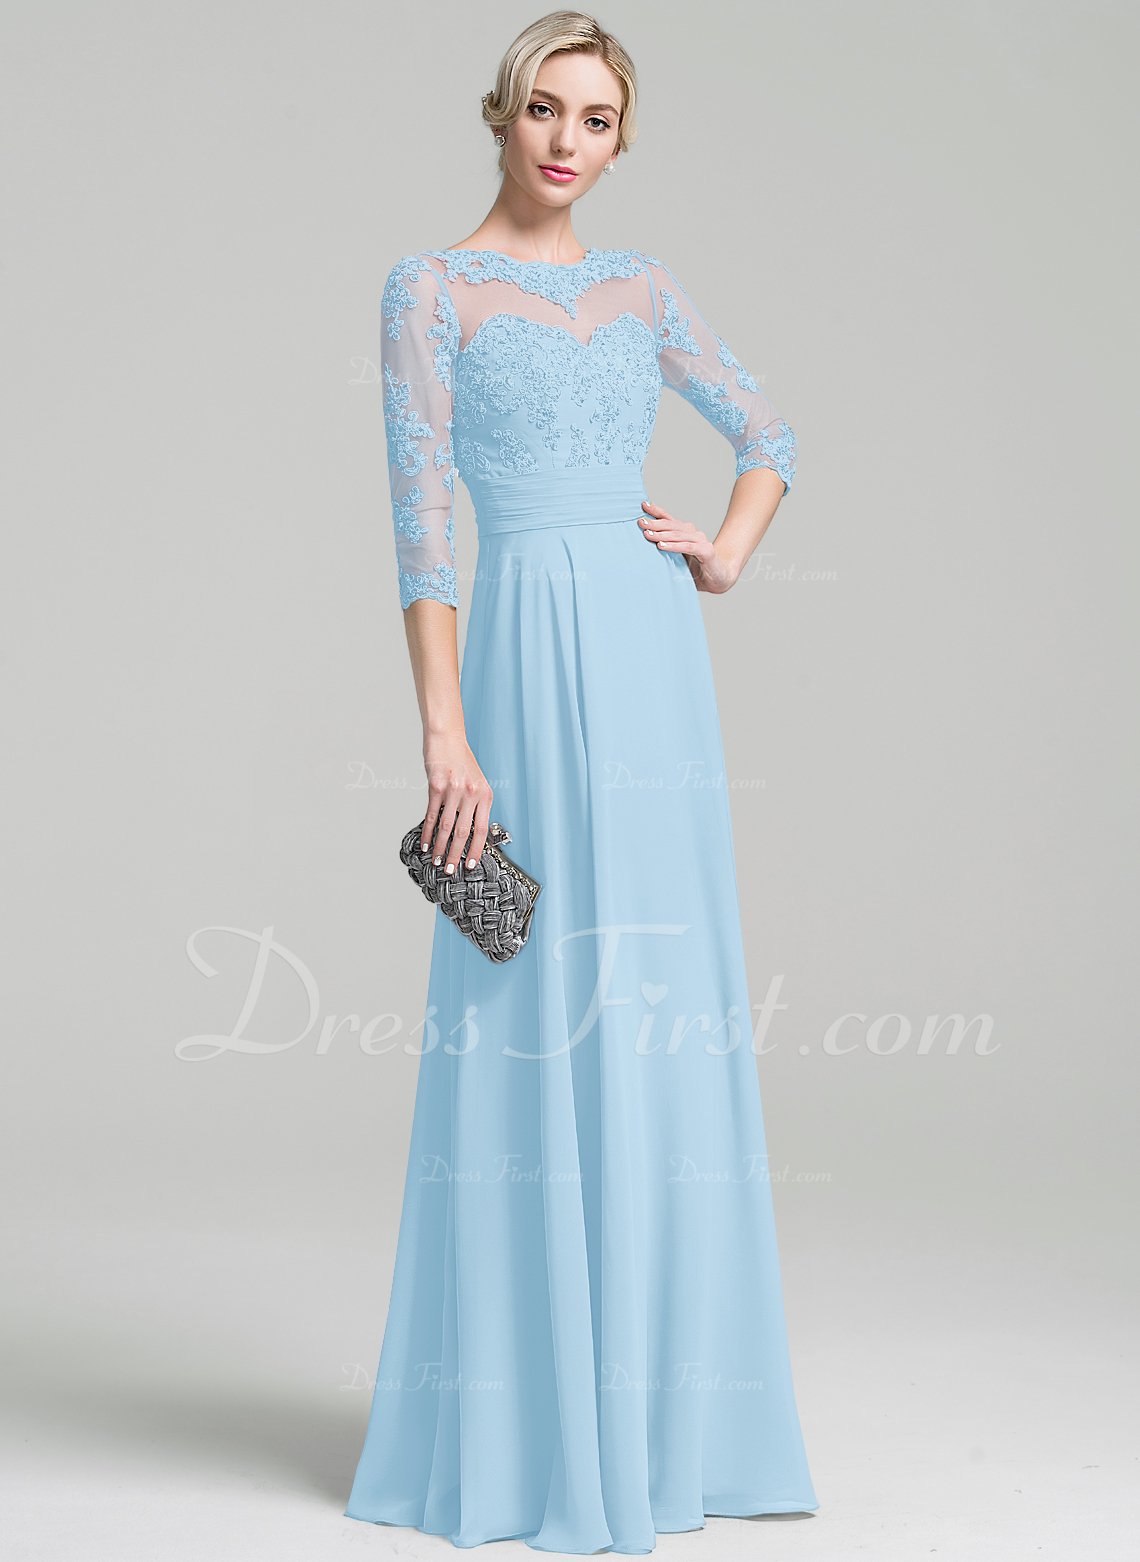 dec16040c20a1 Mother of the Bride Dresses   91948. Loading zoom. Loading. A-Line Princess  Scoop Neck Floor-Length Chiffon ...